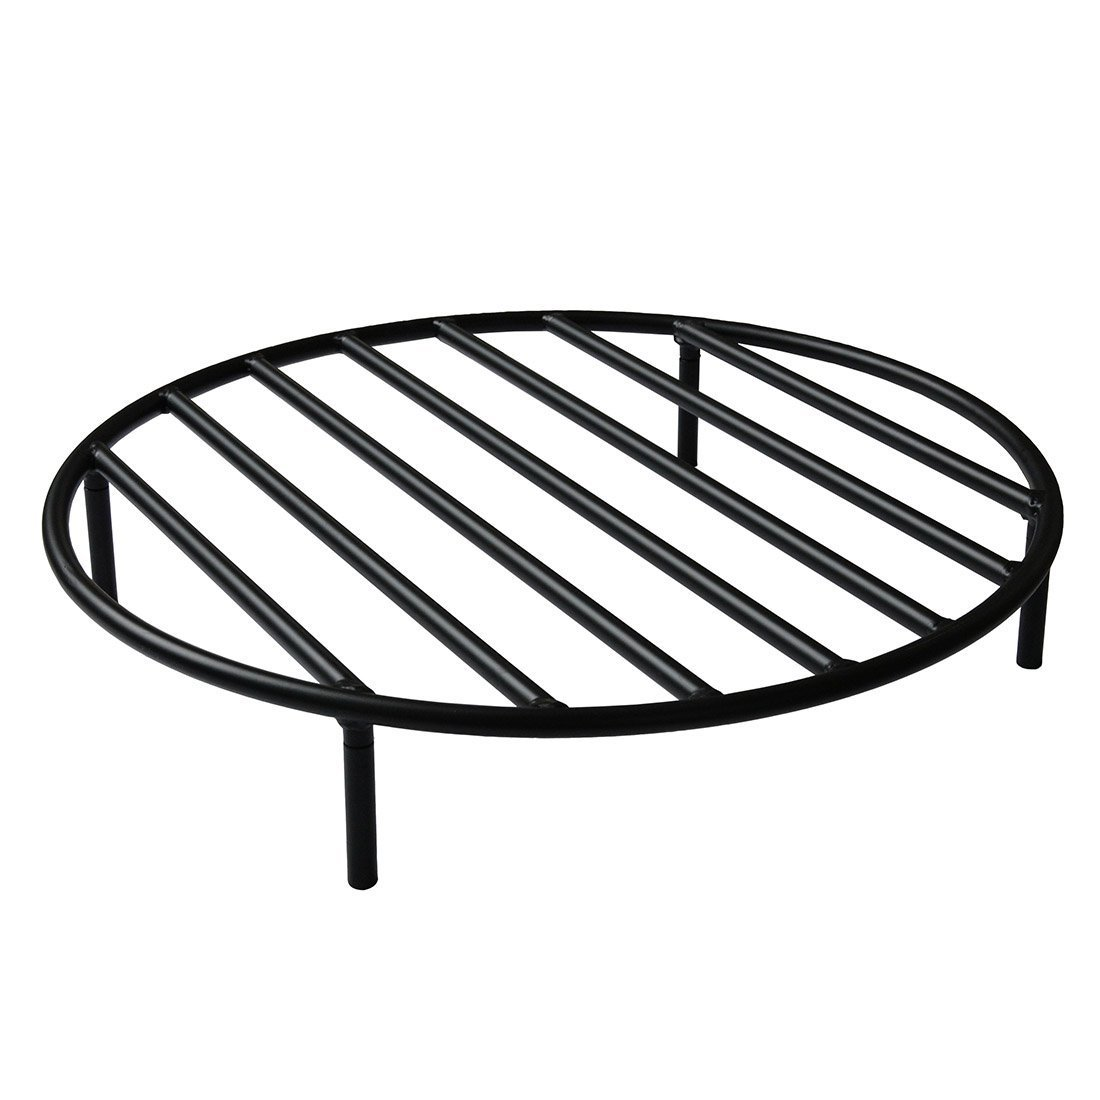 onlyfire Round Fire Pit Grate with 4 Legs for Outdoor Campfire Grill Cooking, 30 Inch